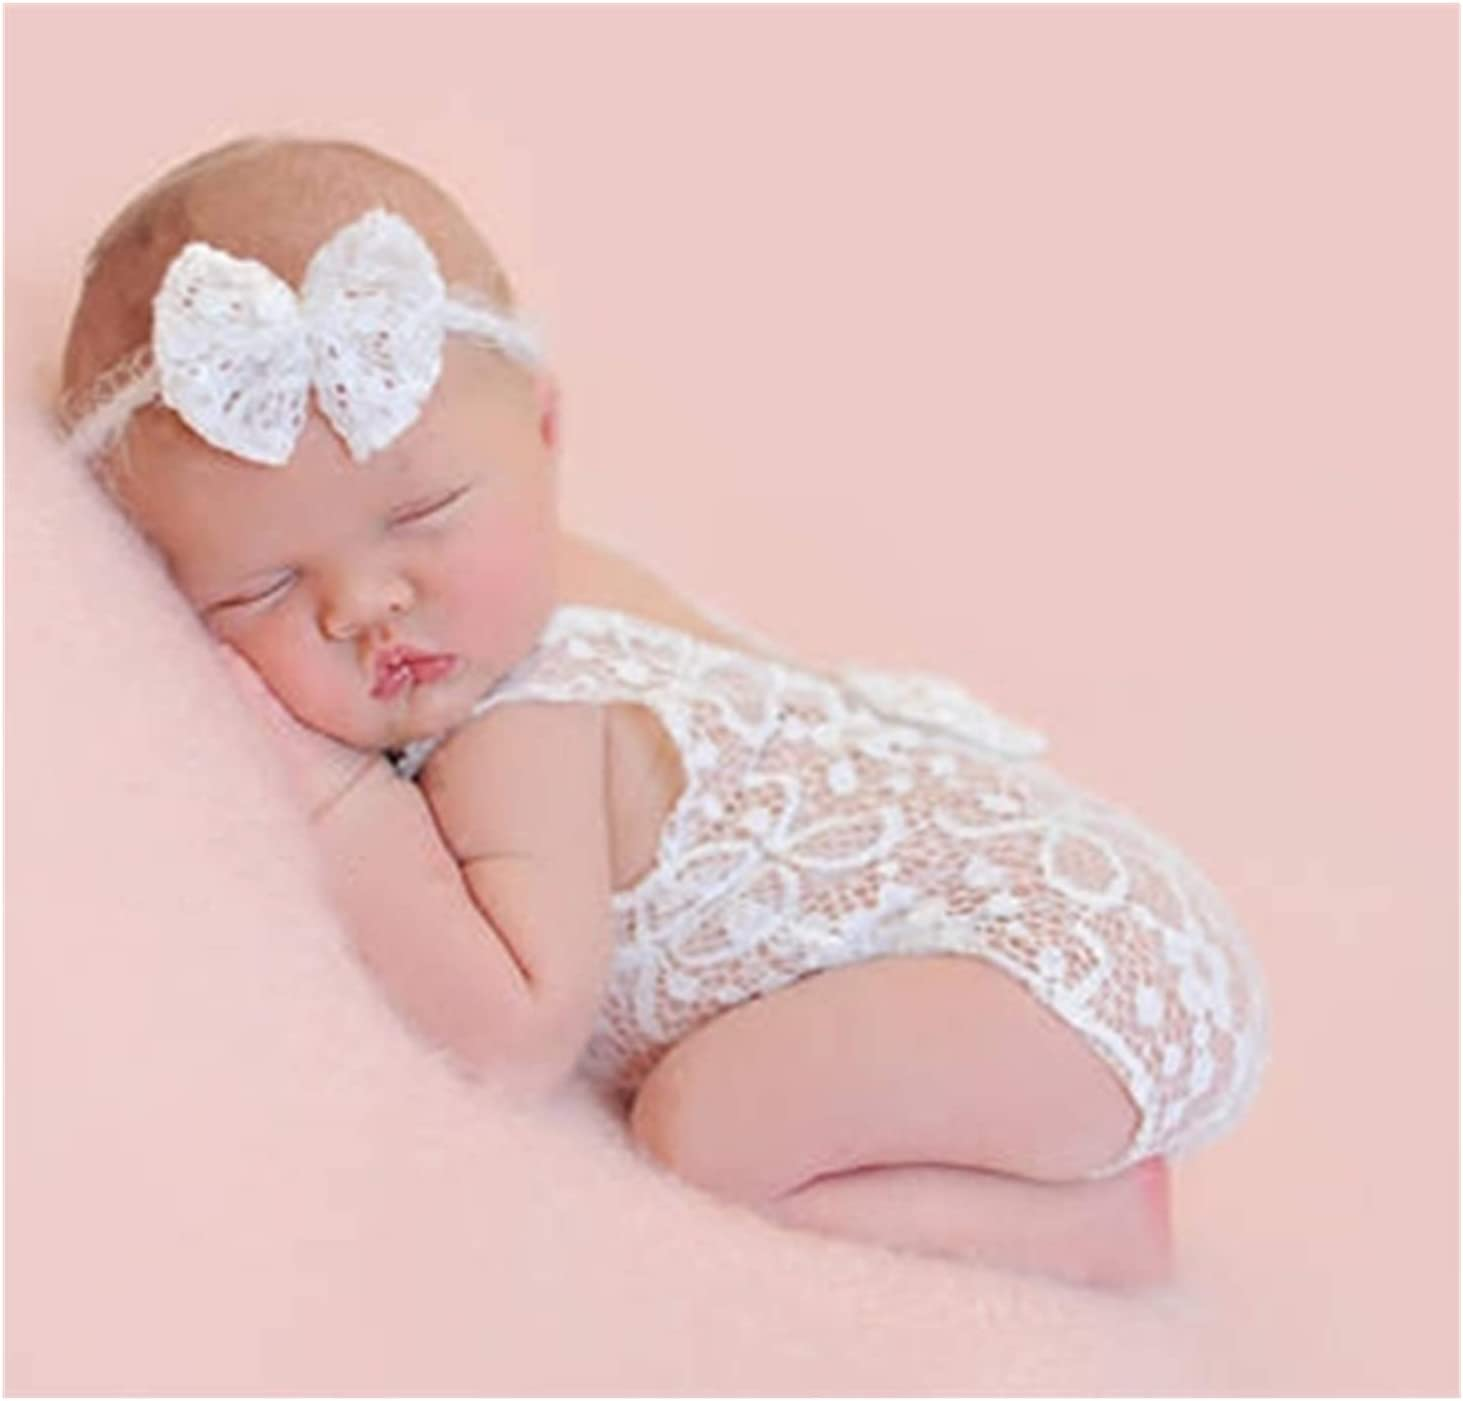 Newborn Baby Lace Rompers Photography Props with Bow Headdress Shoot Outfits for Infant Boy Girl Princess Twins White 0-6 Months